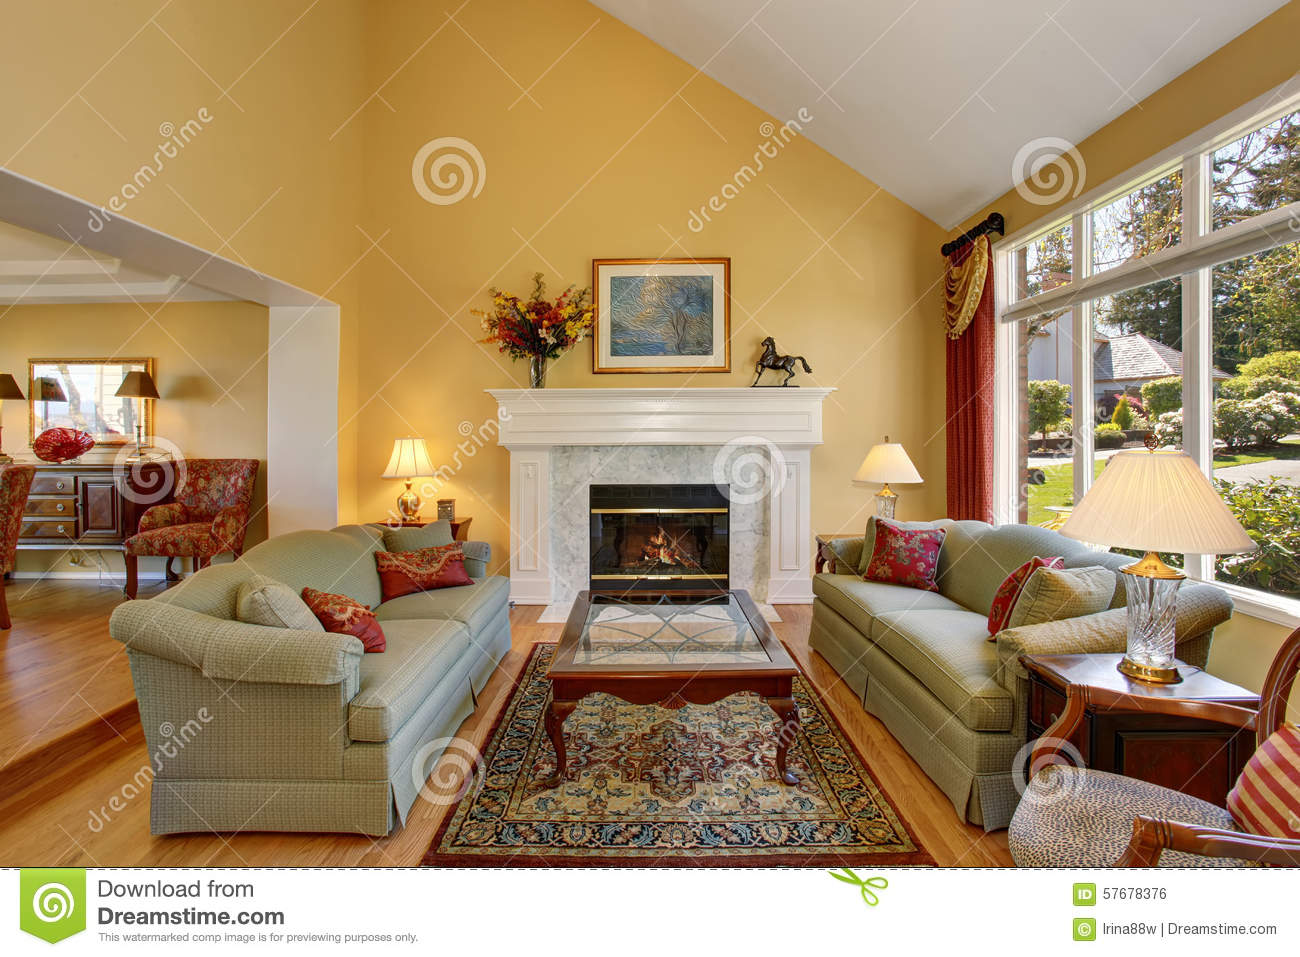 Yellow living room paint ideas nice wall for design for Living room yellow walls